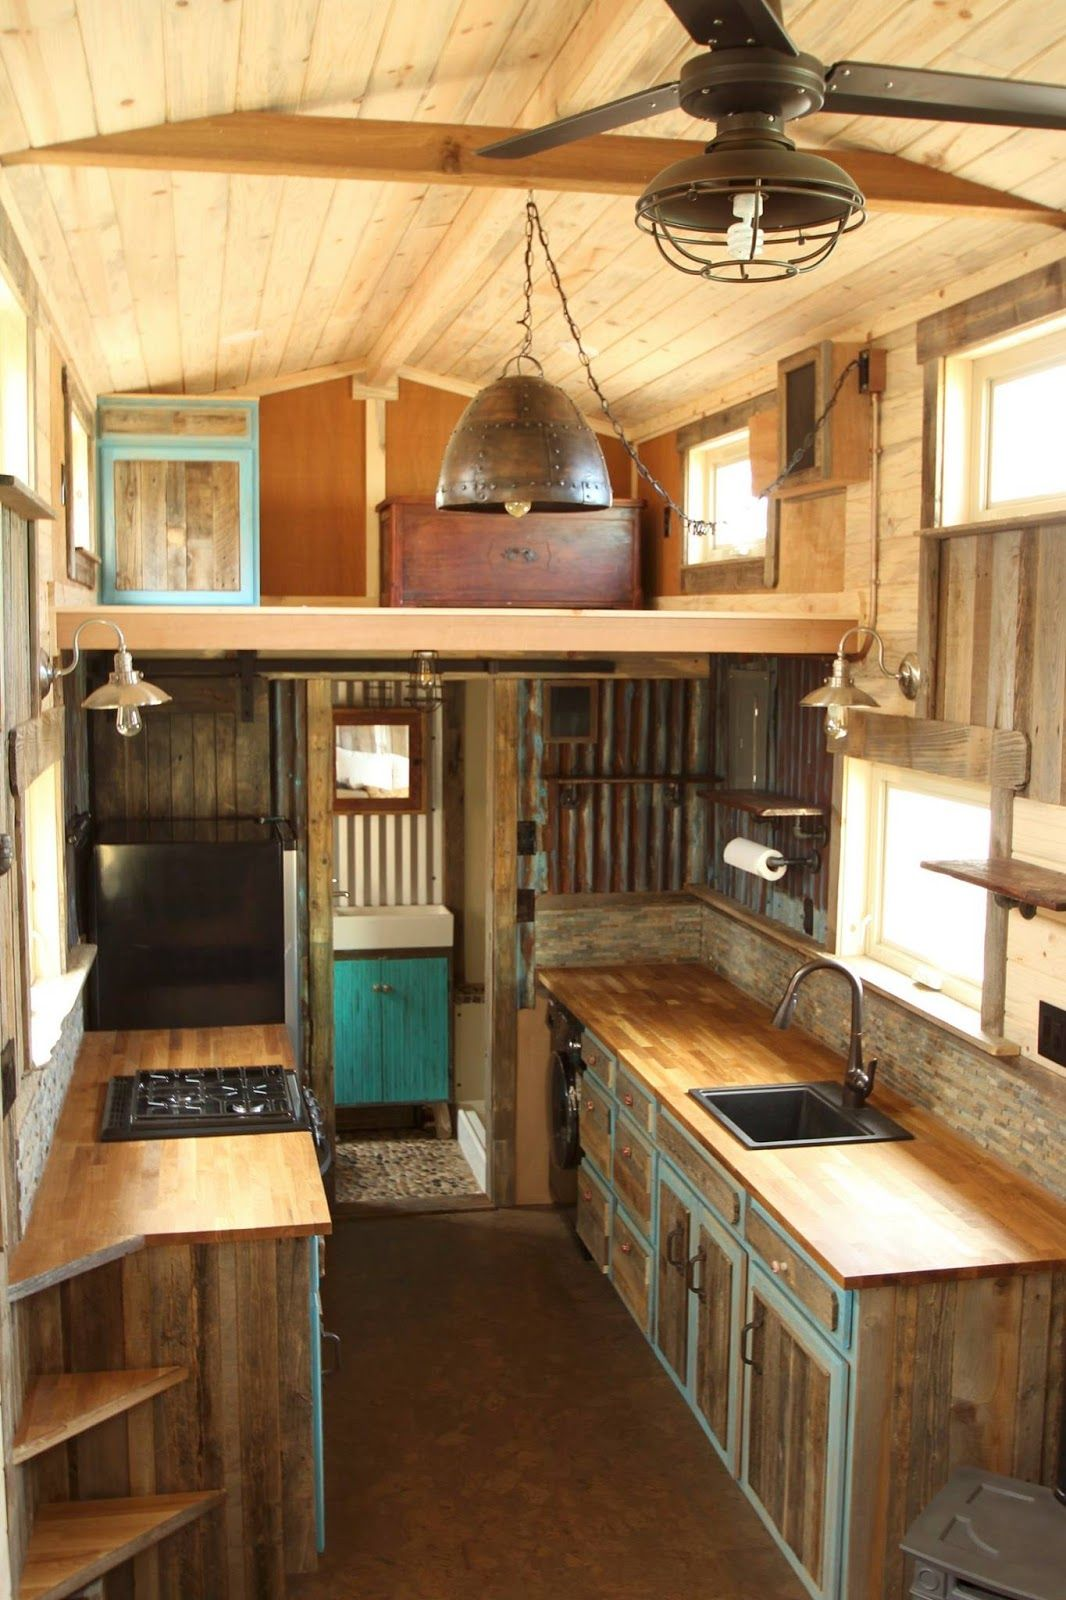 Tiny Home Designs: A Beautiful Custom Rustic Home From SimBLISSity Tiny Homes